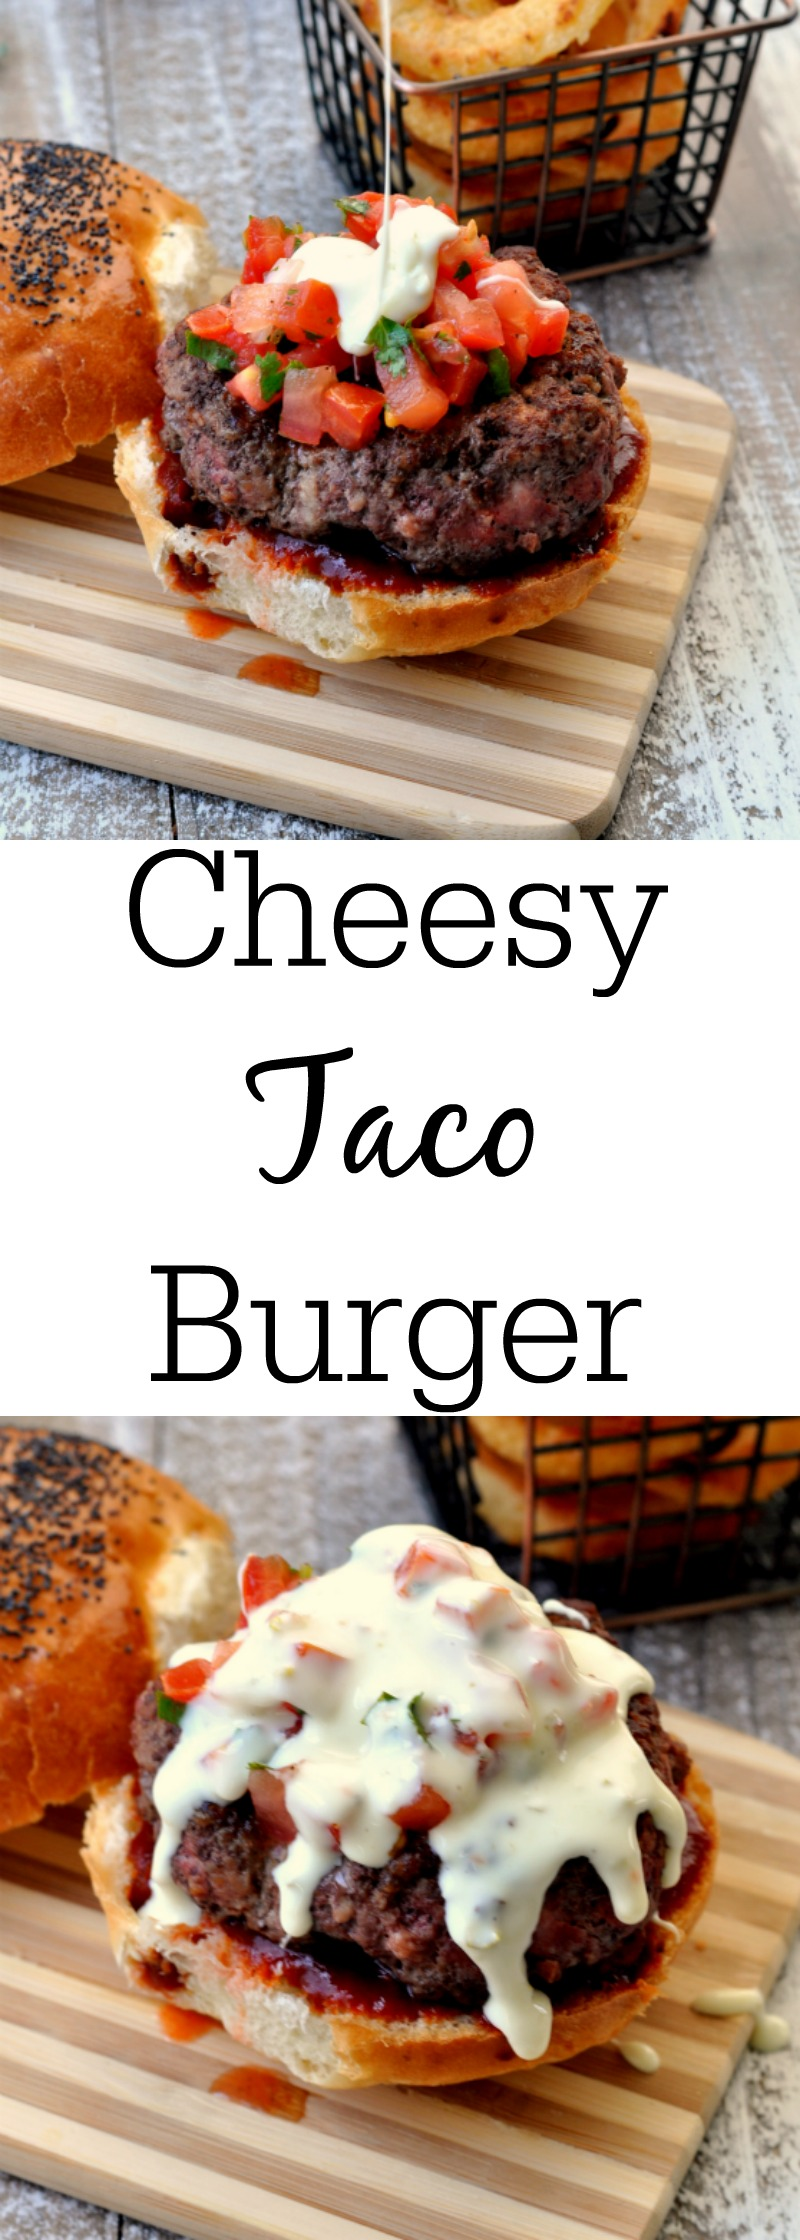 Cheesy Taco Burger